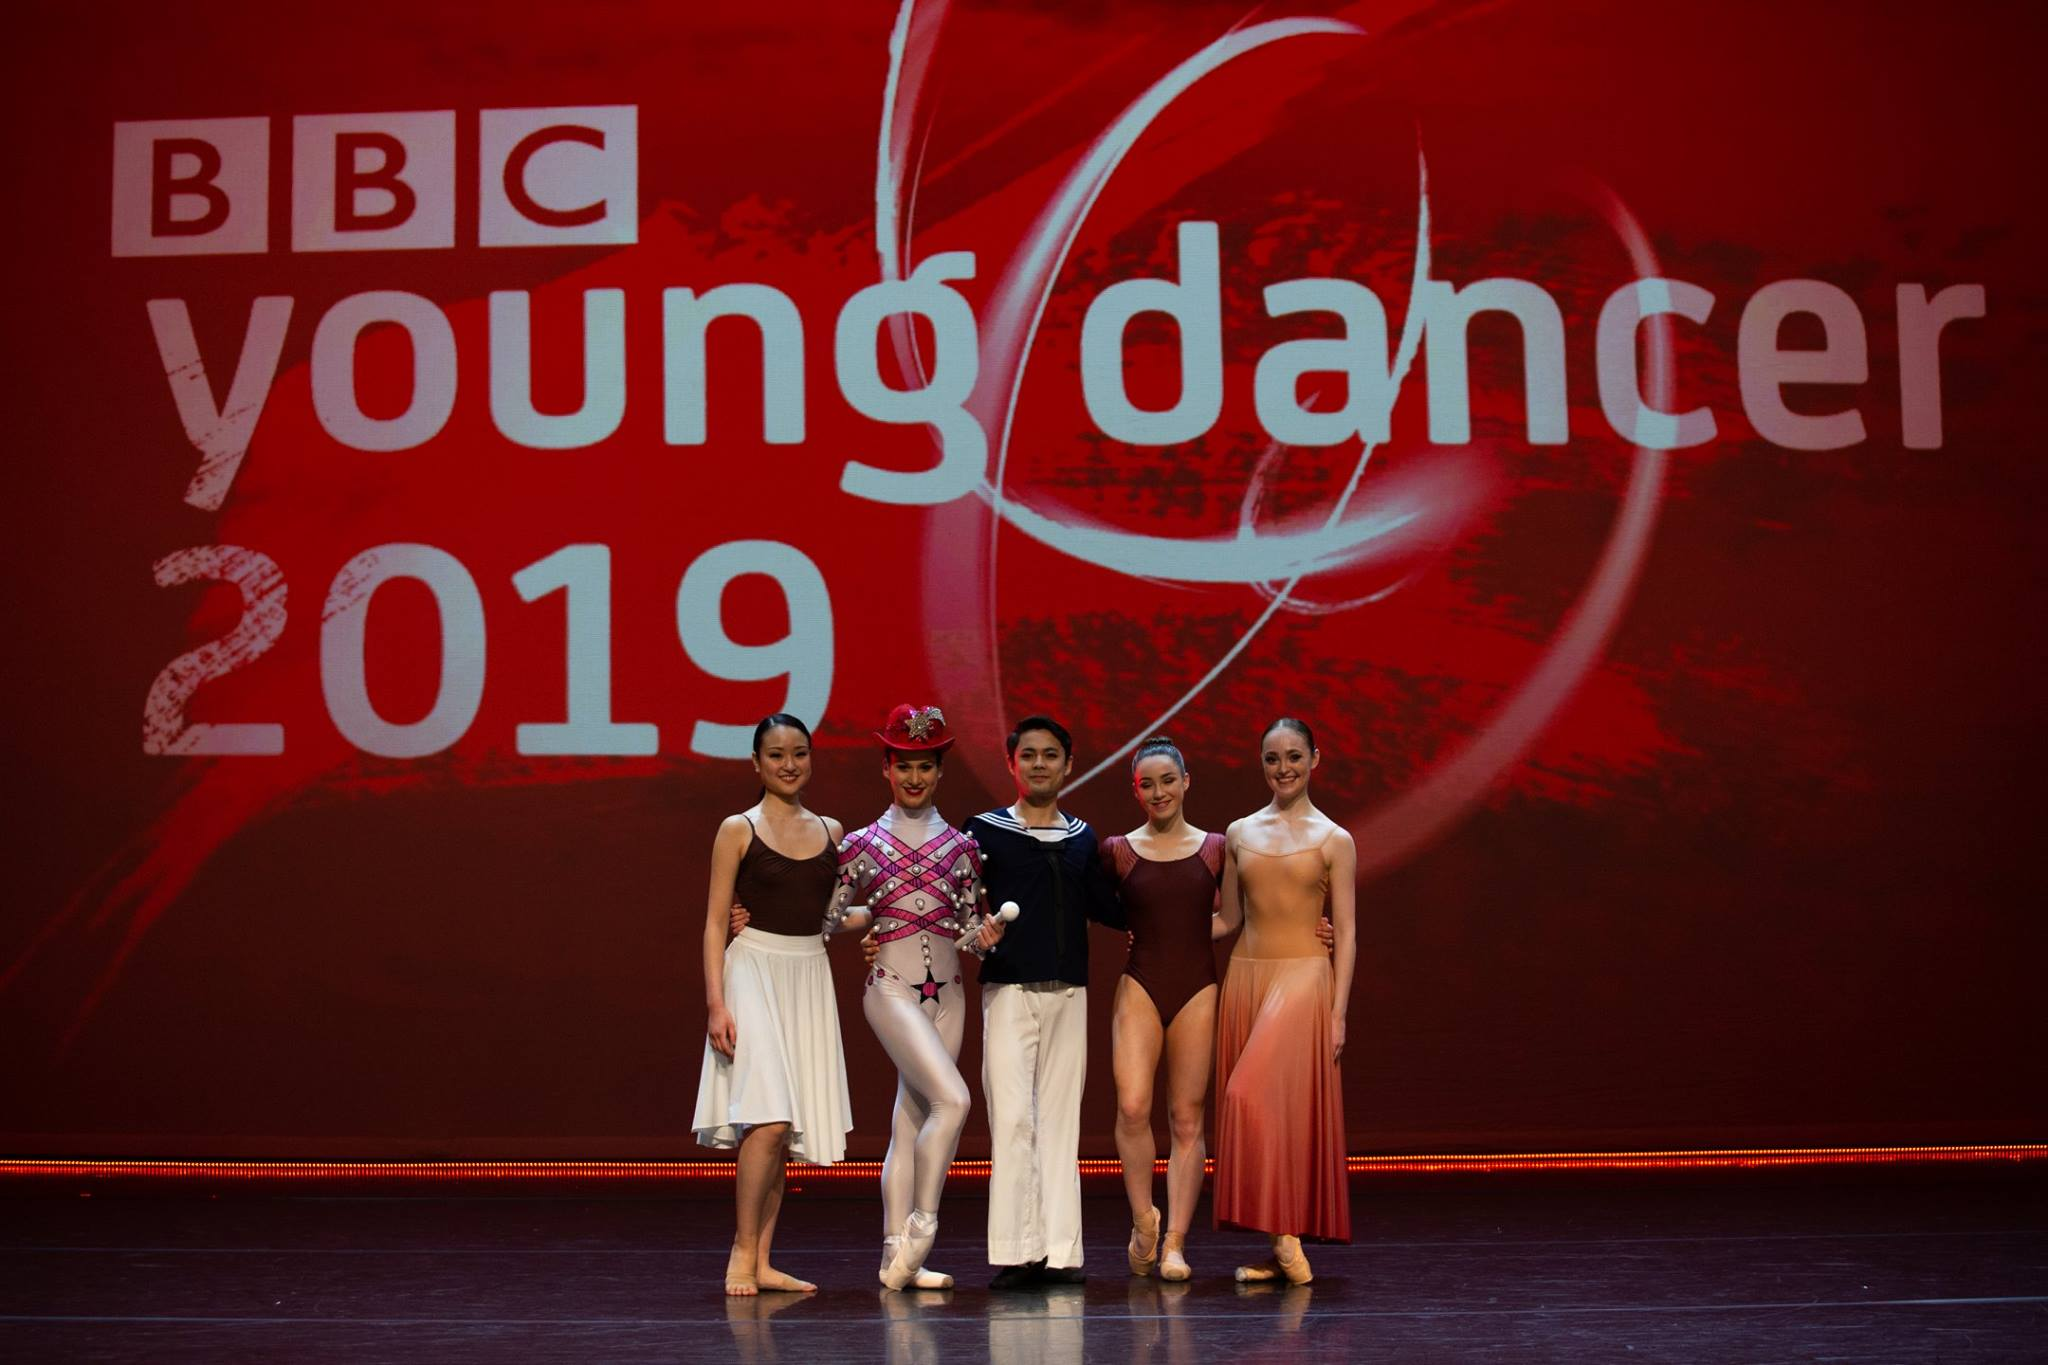 Royal Conservatoire of Scotland students leap into ballet final of BBC Young Dancer 2019 Image